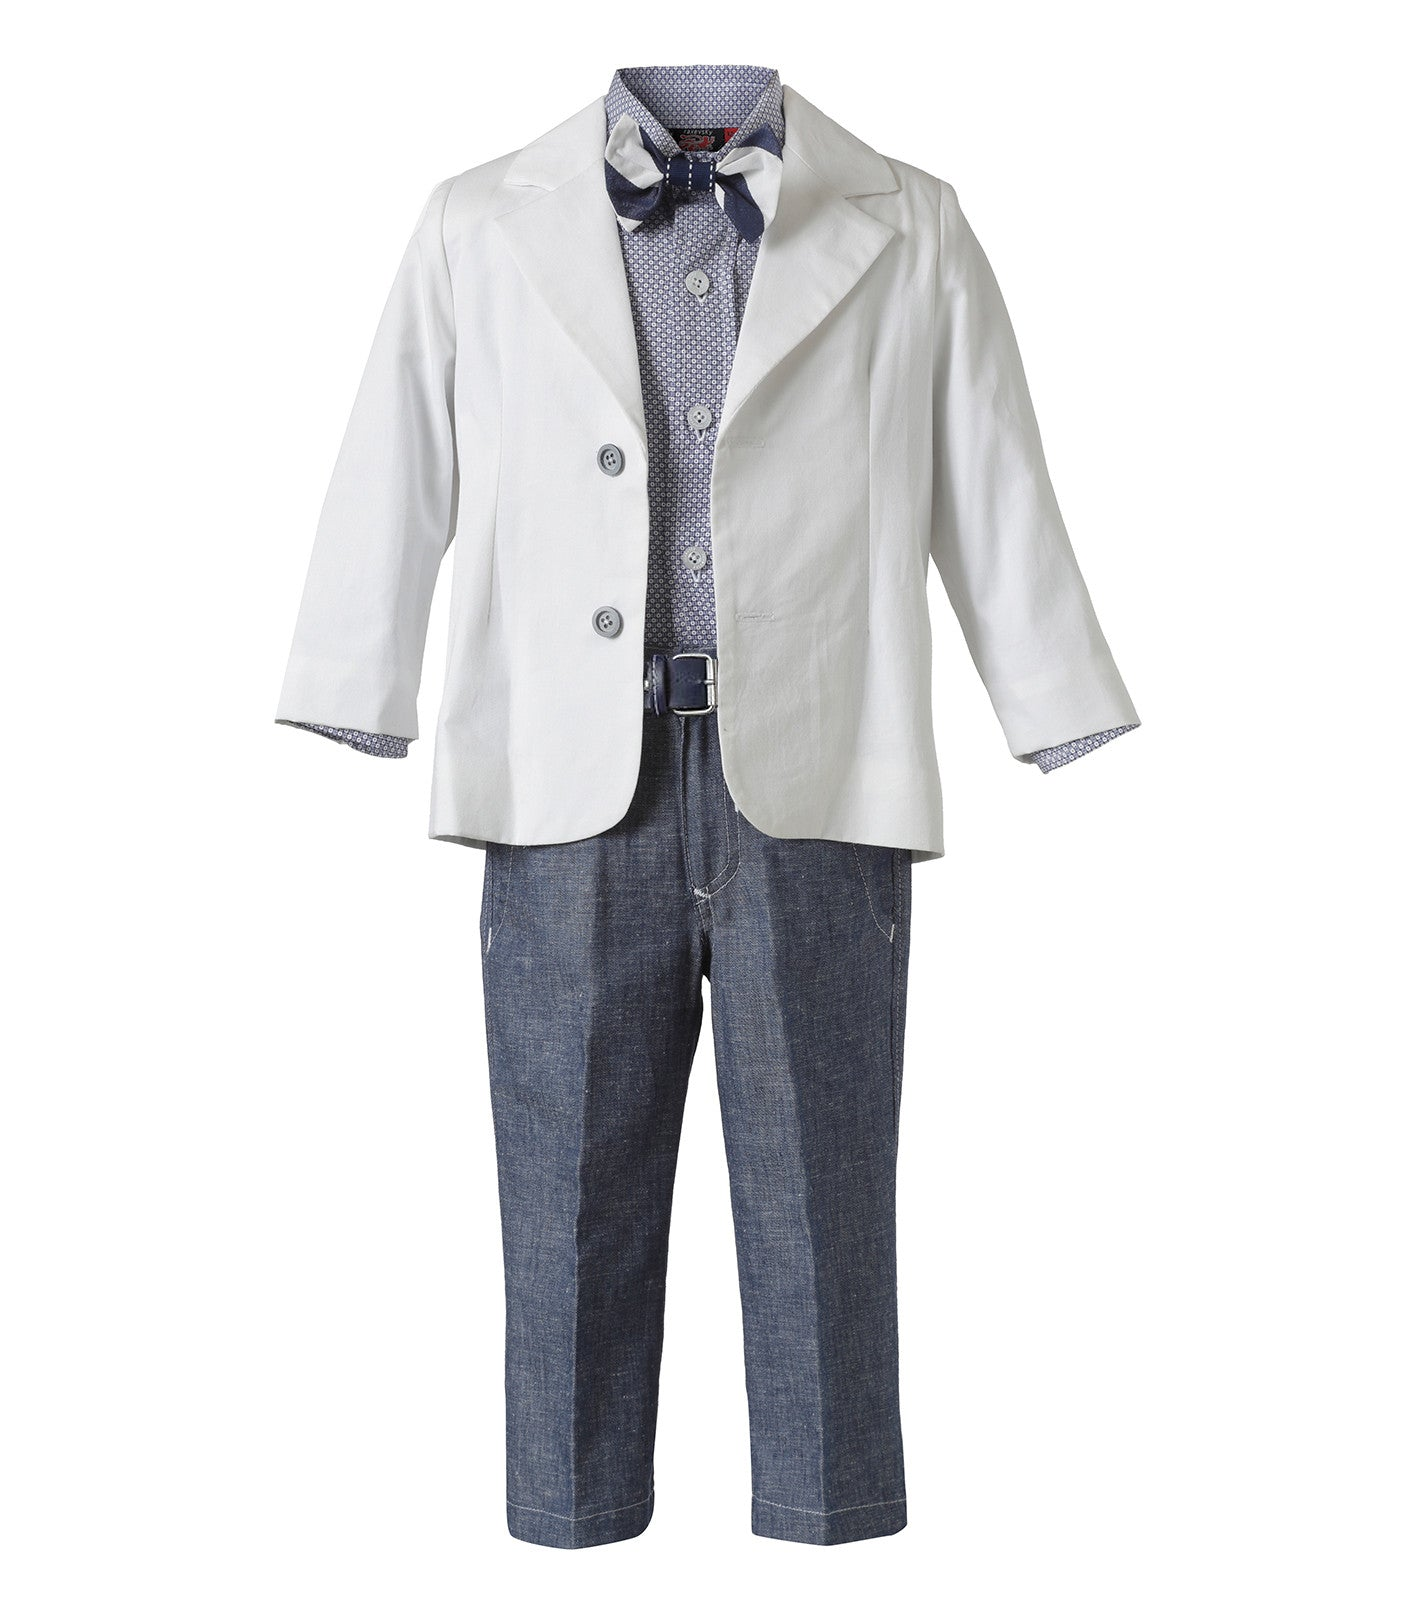 6 Piece Suit set for boys